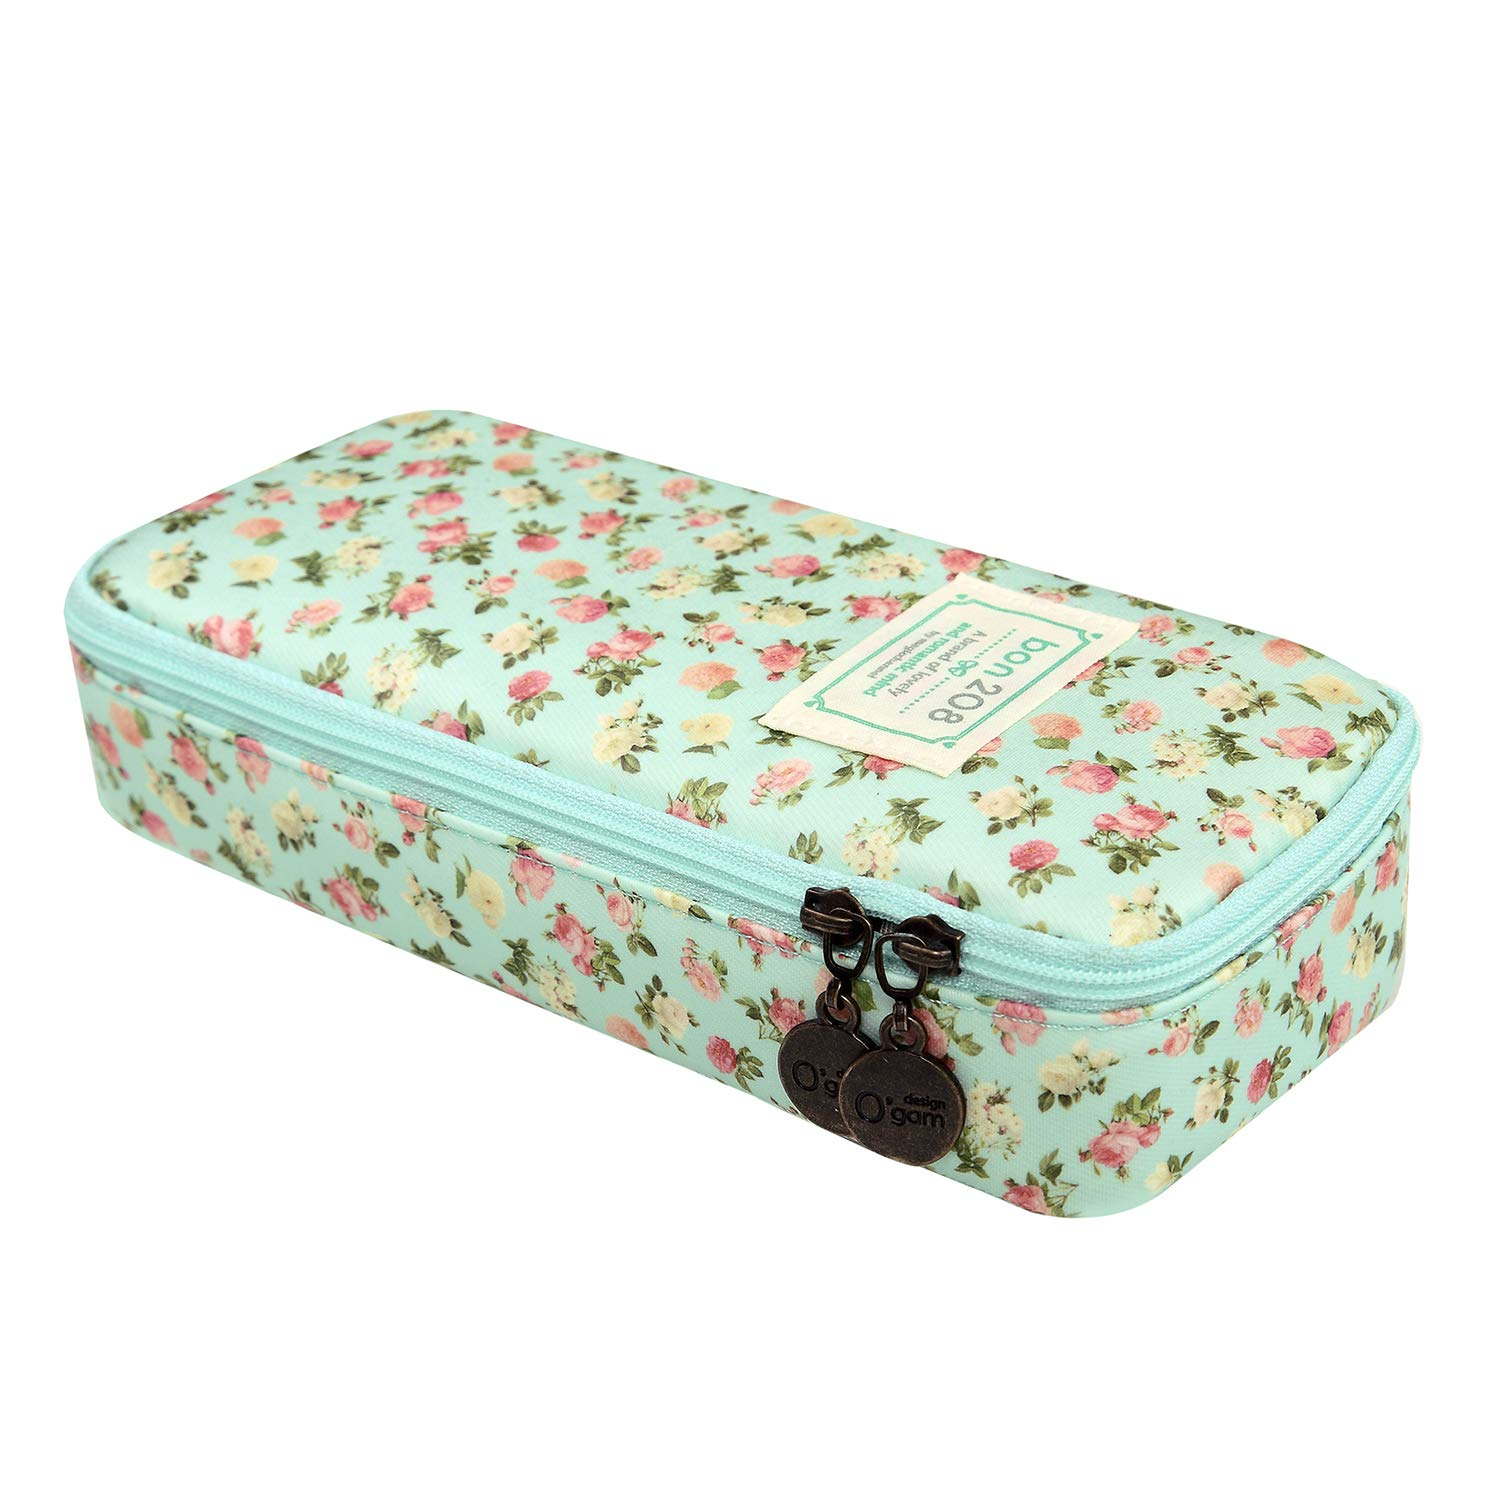 D.Sword Cute Pencil Case for Kid,Big Capacity Pen Bag Student Office Stationery Organizer for College Middle School Grade School,Floral Pencil Pouch Cosmetic Bag Makeup Bag(Light Green with Flowers)